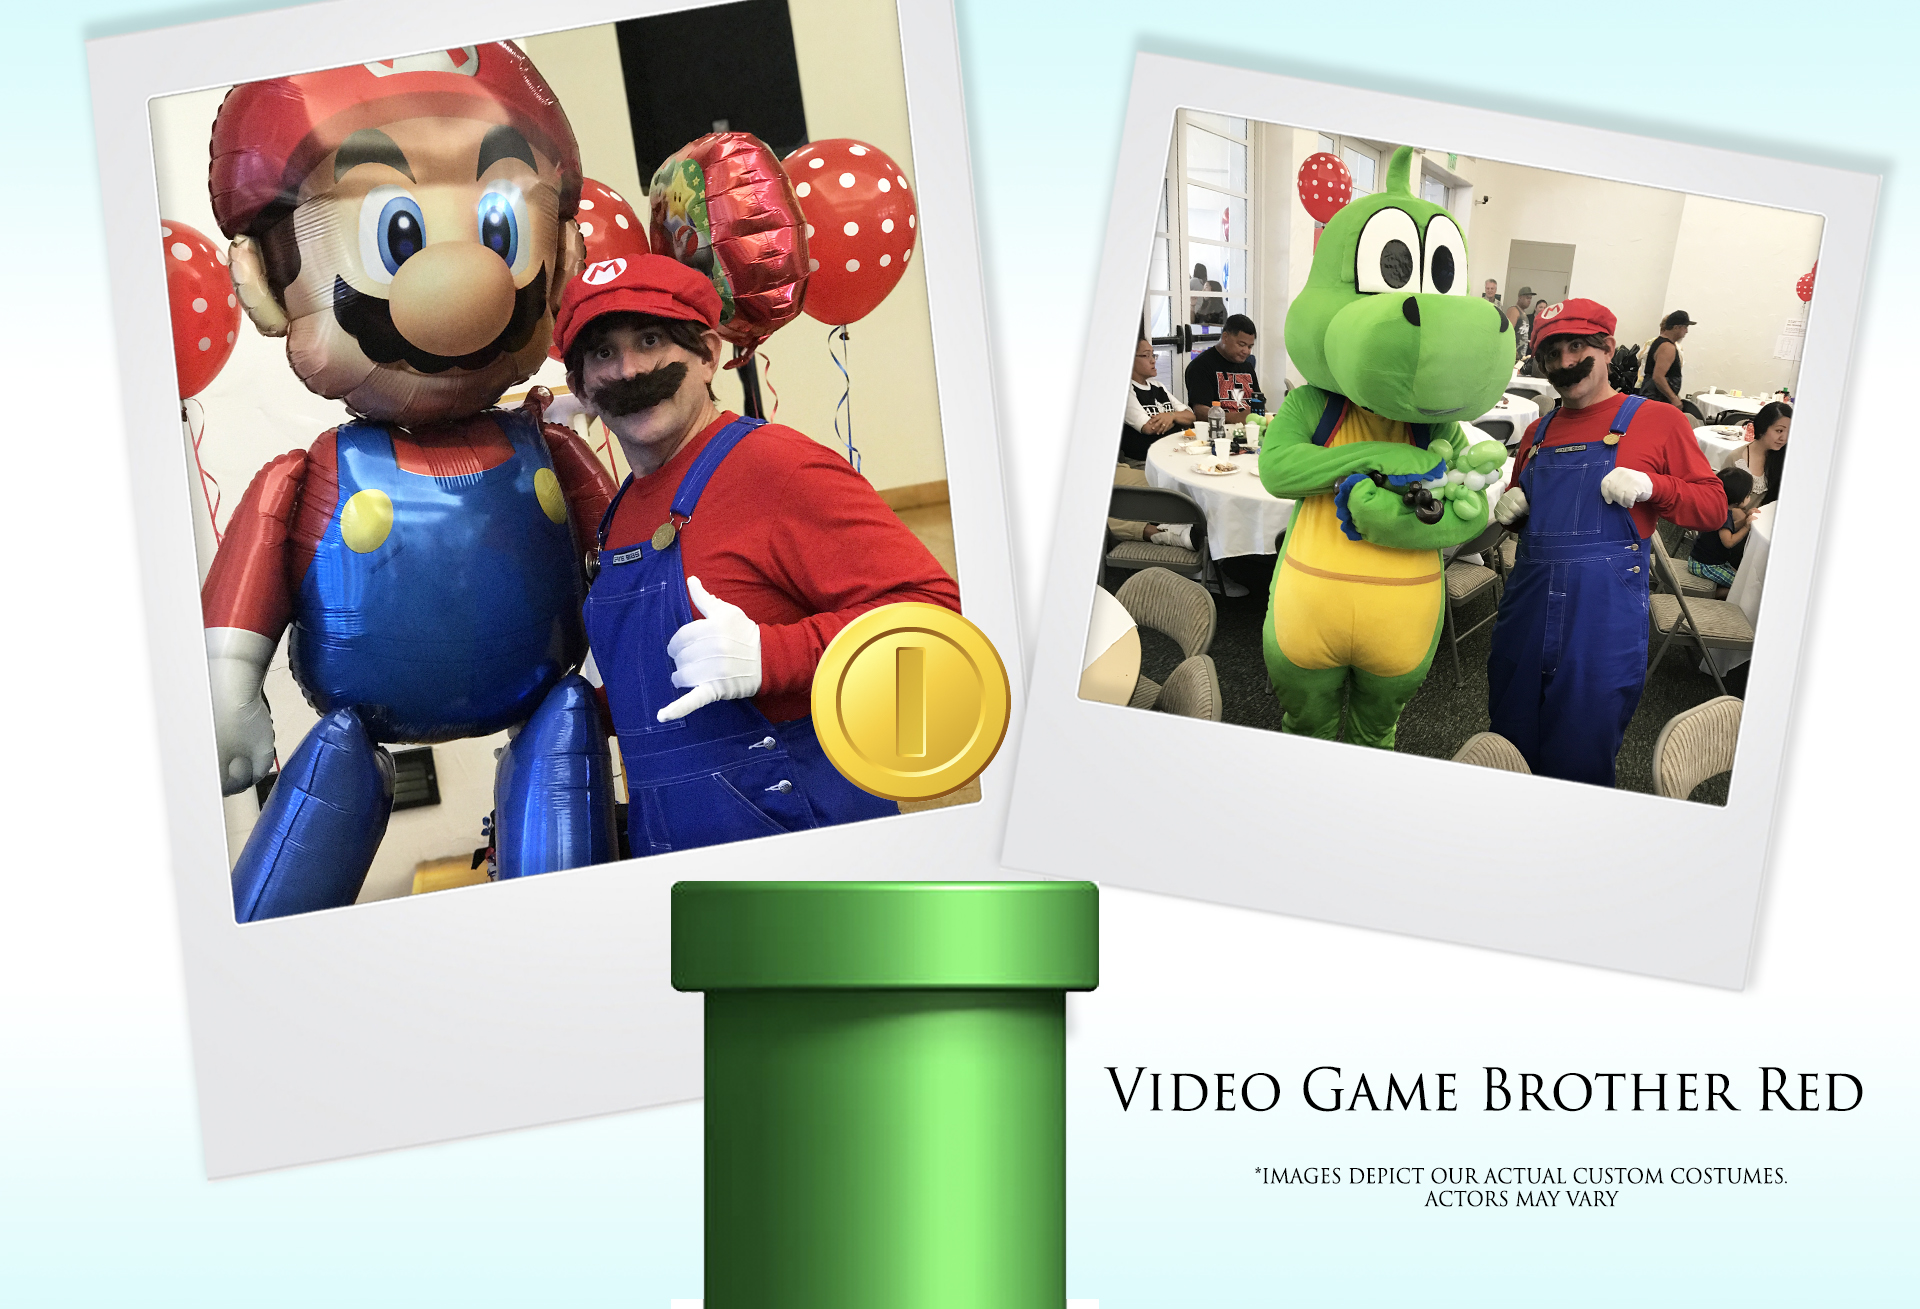 Video Game Brother Red